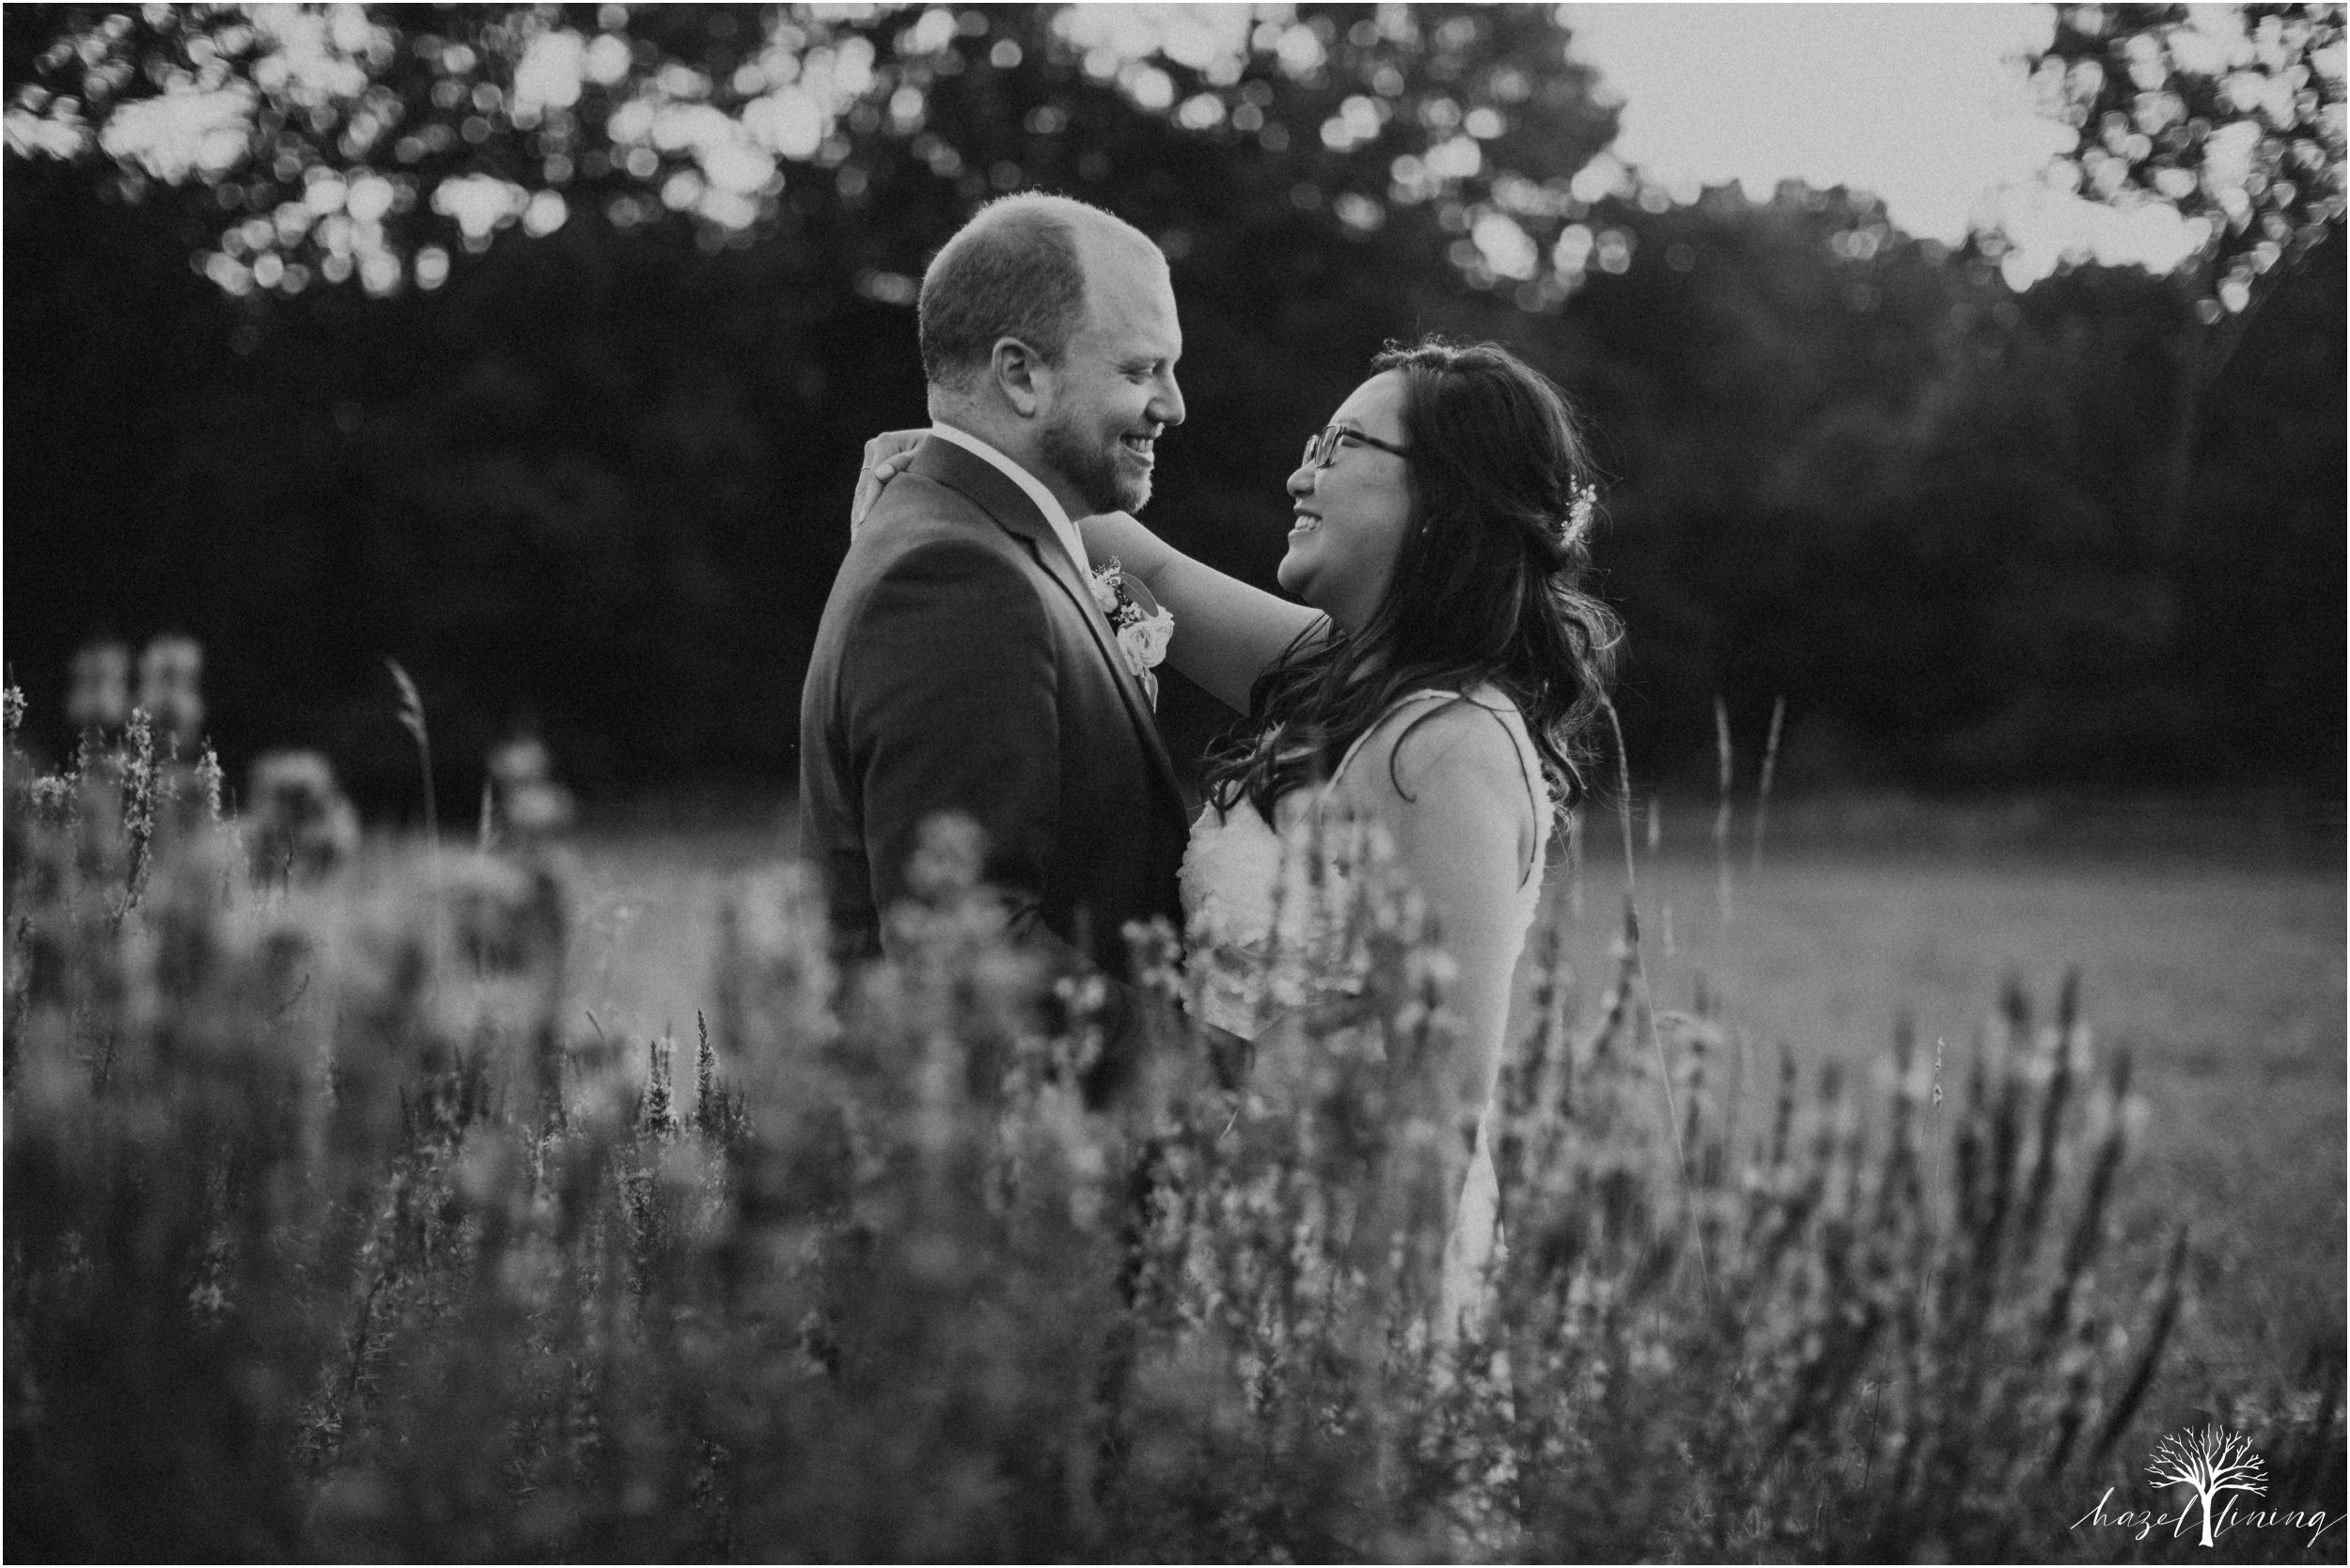 jason-tercha-laura-caruso-the-farm-bakery-and-events-quakertown-pa-summer-wedding-hazel-lining-photography-destination-elopement-wedding-engagement-photography_0127.jpg